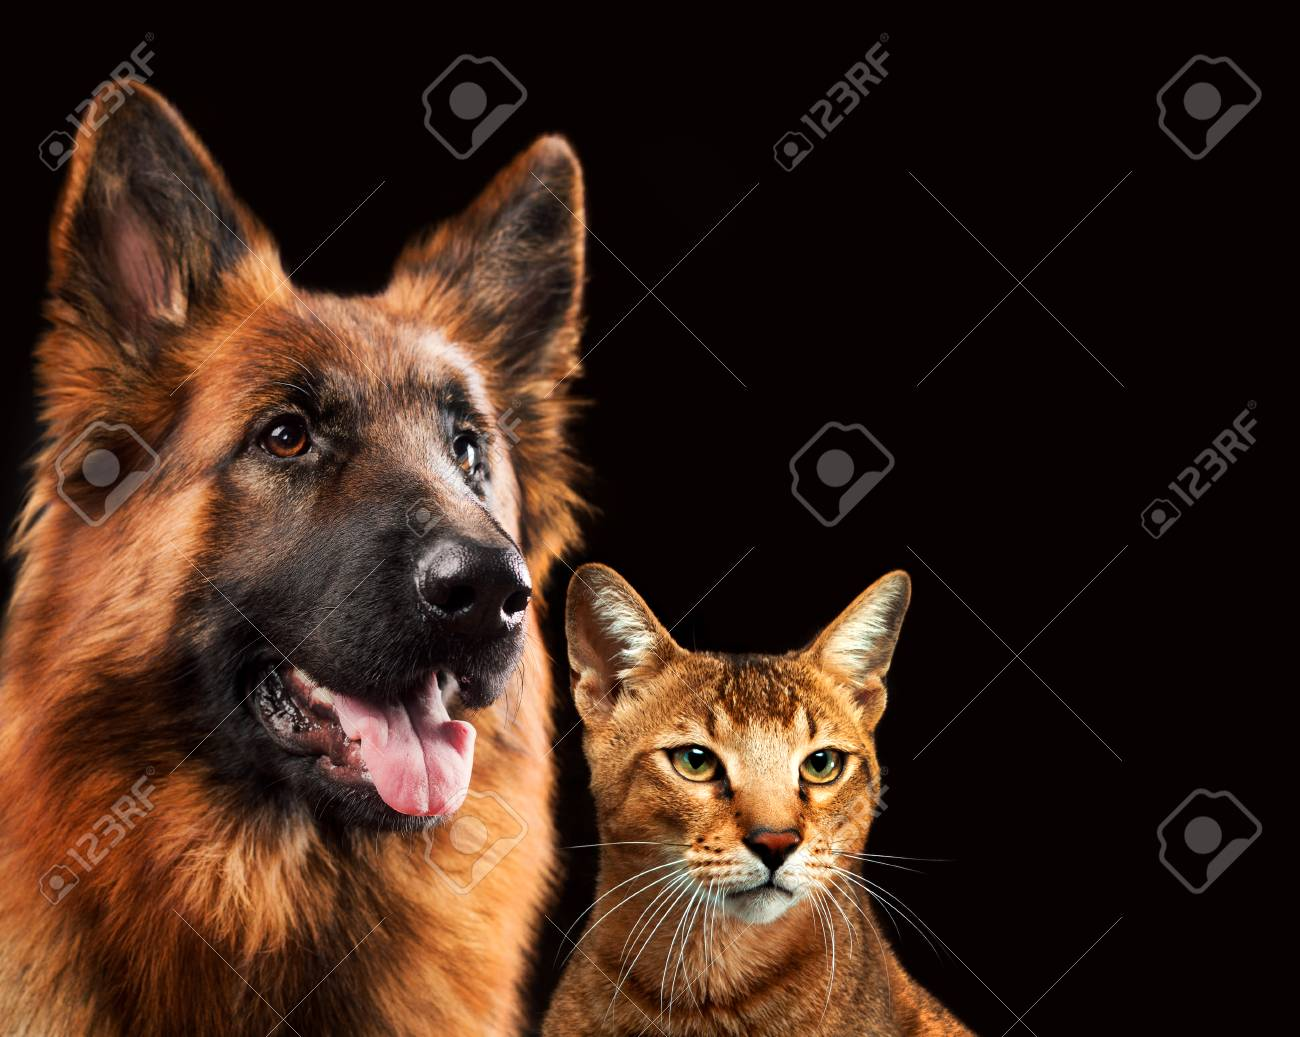 Cat And Dog Together, Chausie Kitten, Abyssinian Cat, German ...